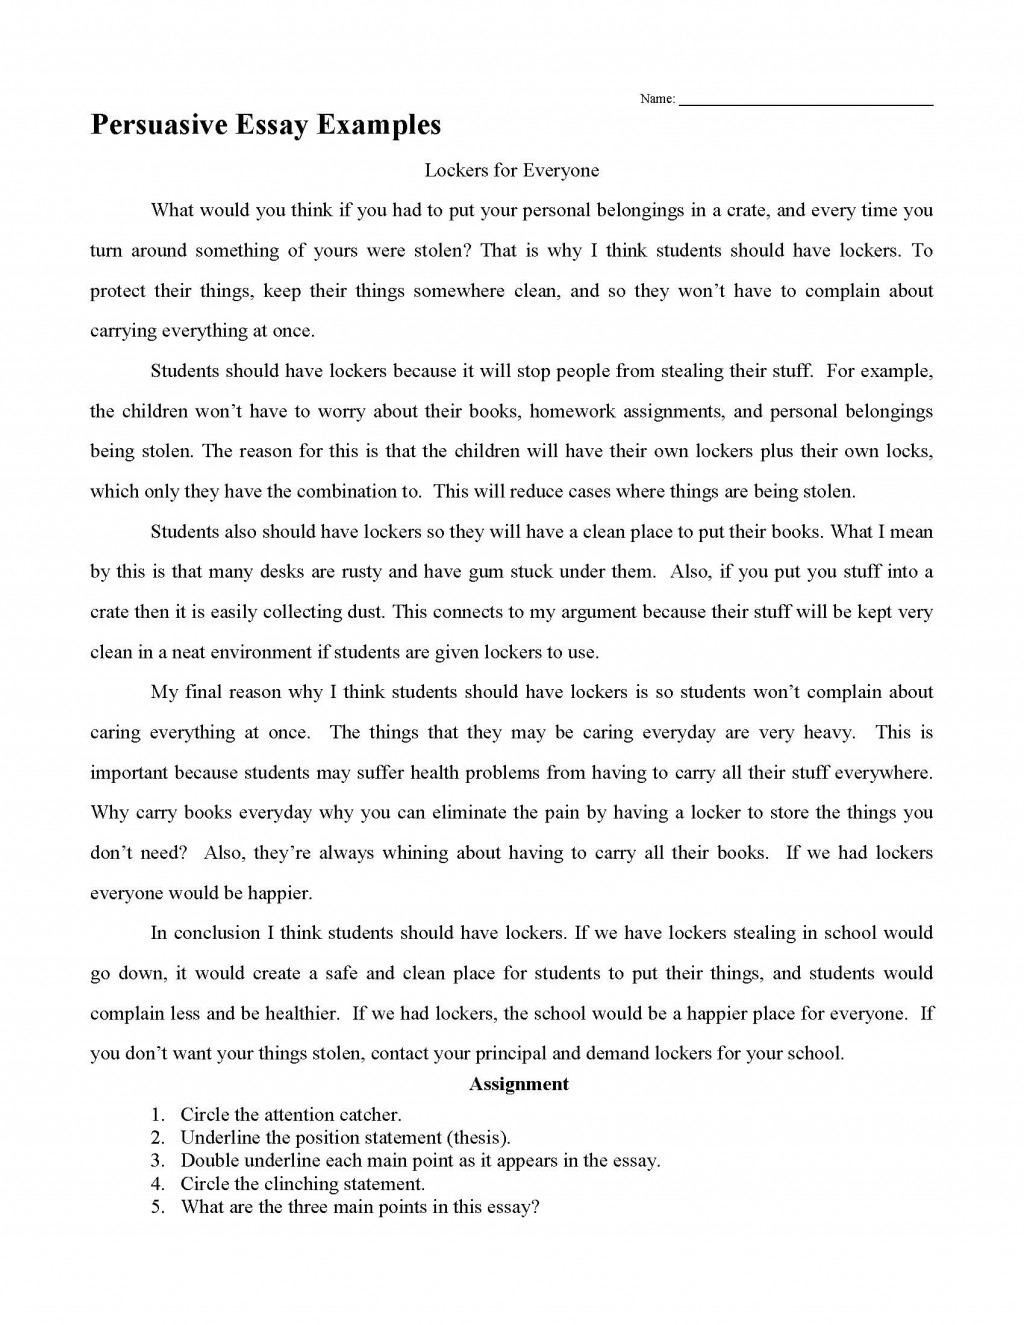 001 Persuasive Essays Impressive Essay Examples For Middle School Good Topics 4th Grade 5th Large